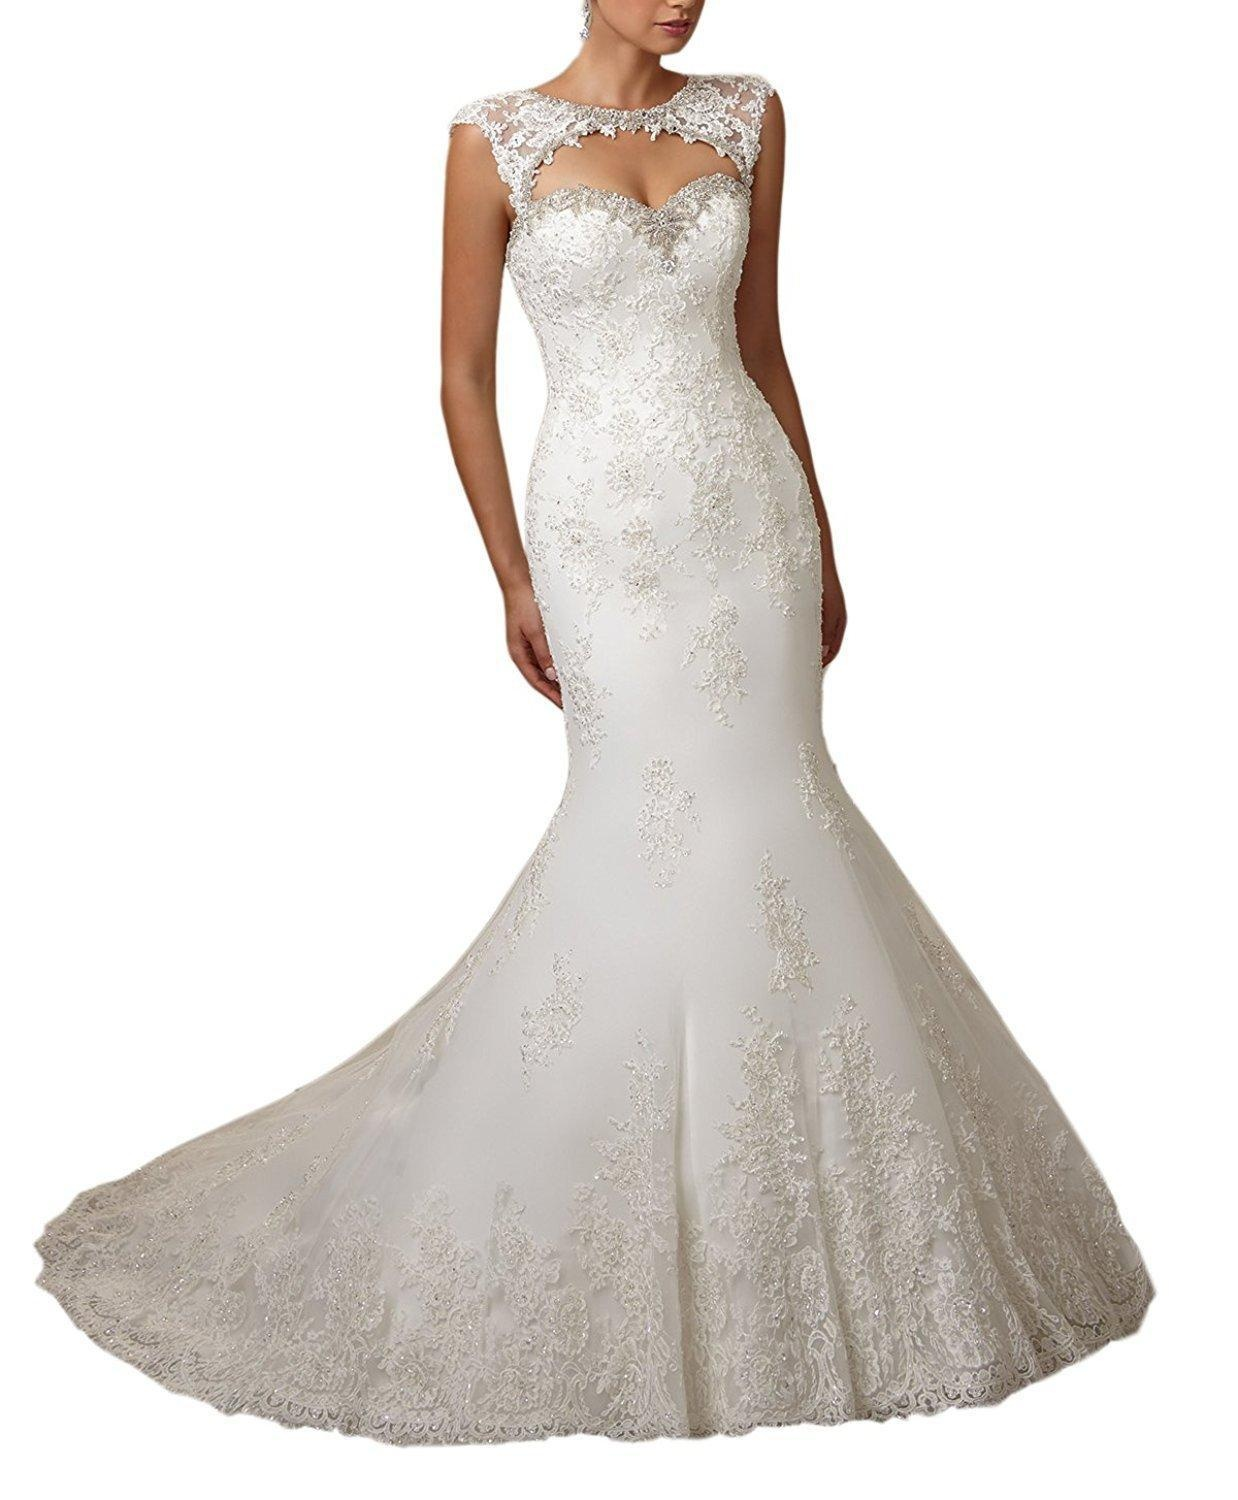 Meledy Women's Jewel Neck Beads Bridal Gown Lace Appliques Court Trains Open Back Long Mermaid Church Wedding Dress White US04